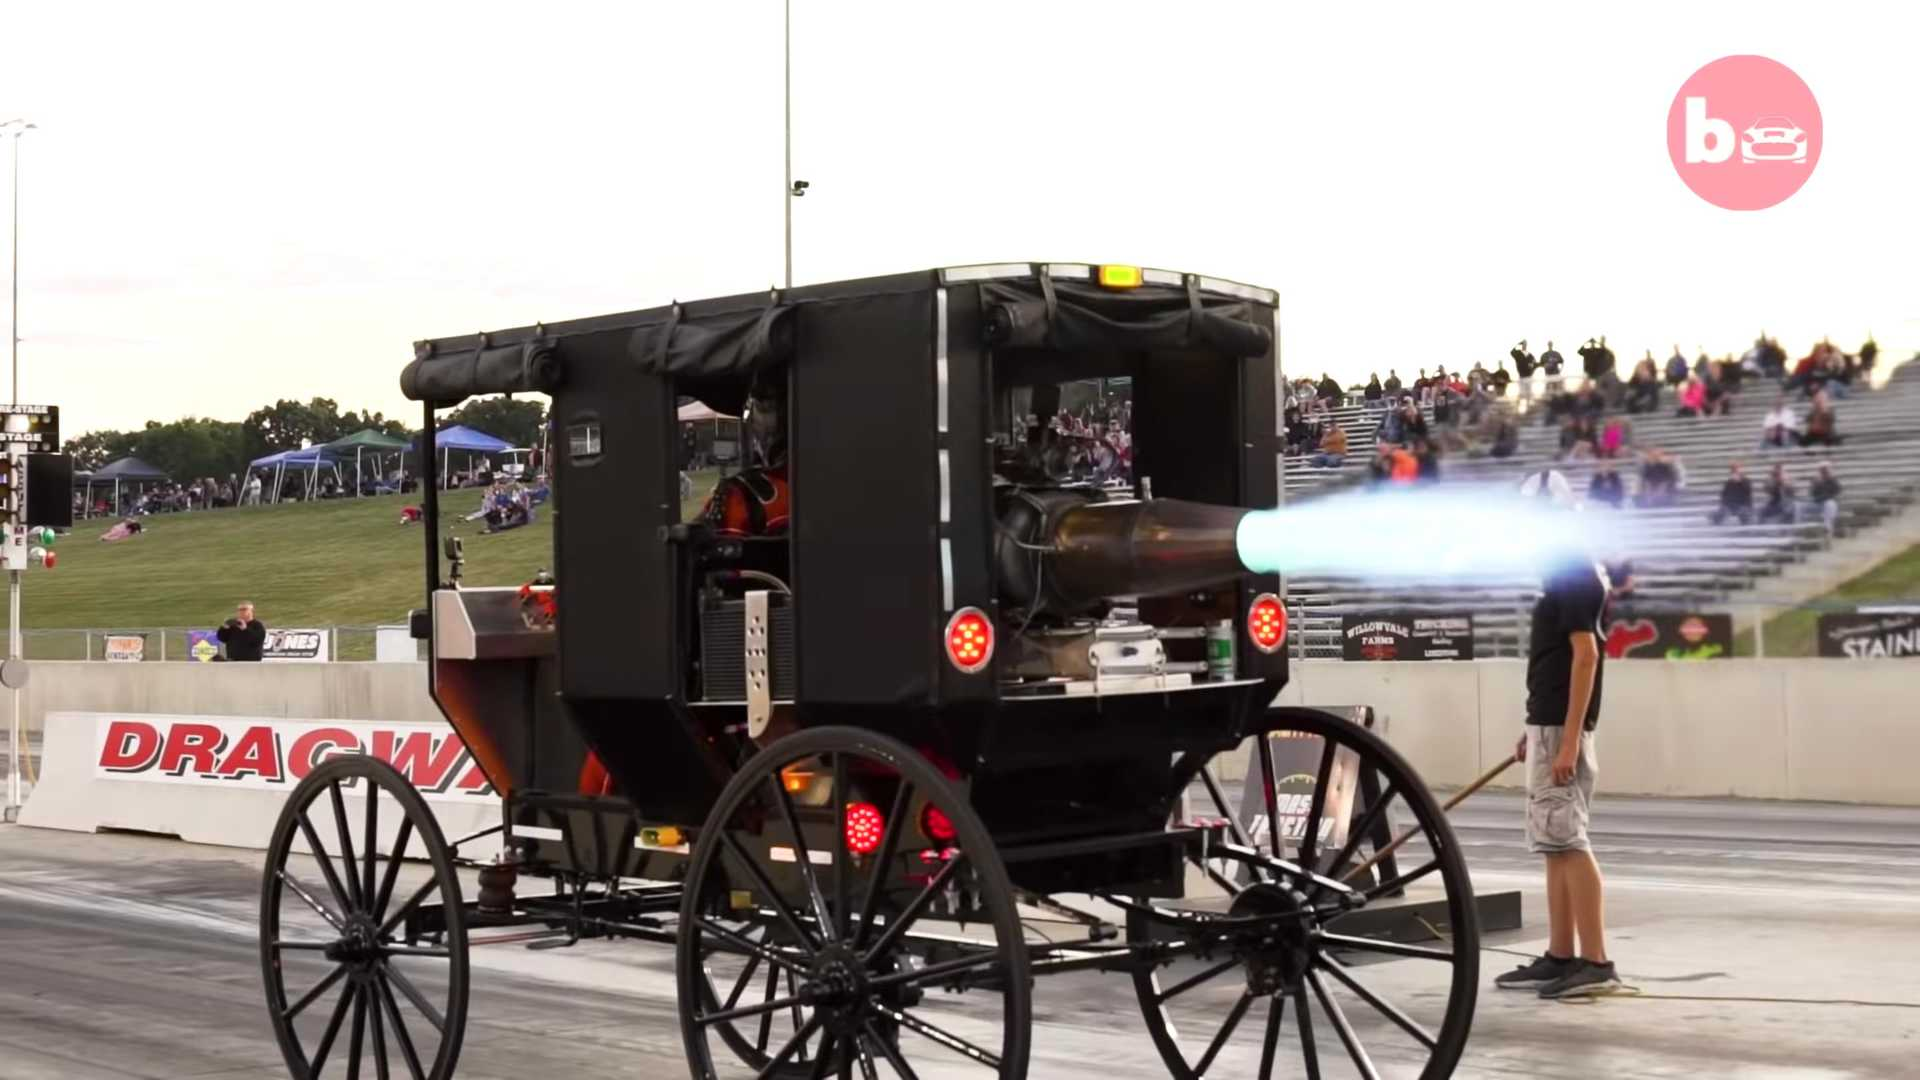 Jet-Powered Amish Buggy Looks Ludicrously Unsafe